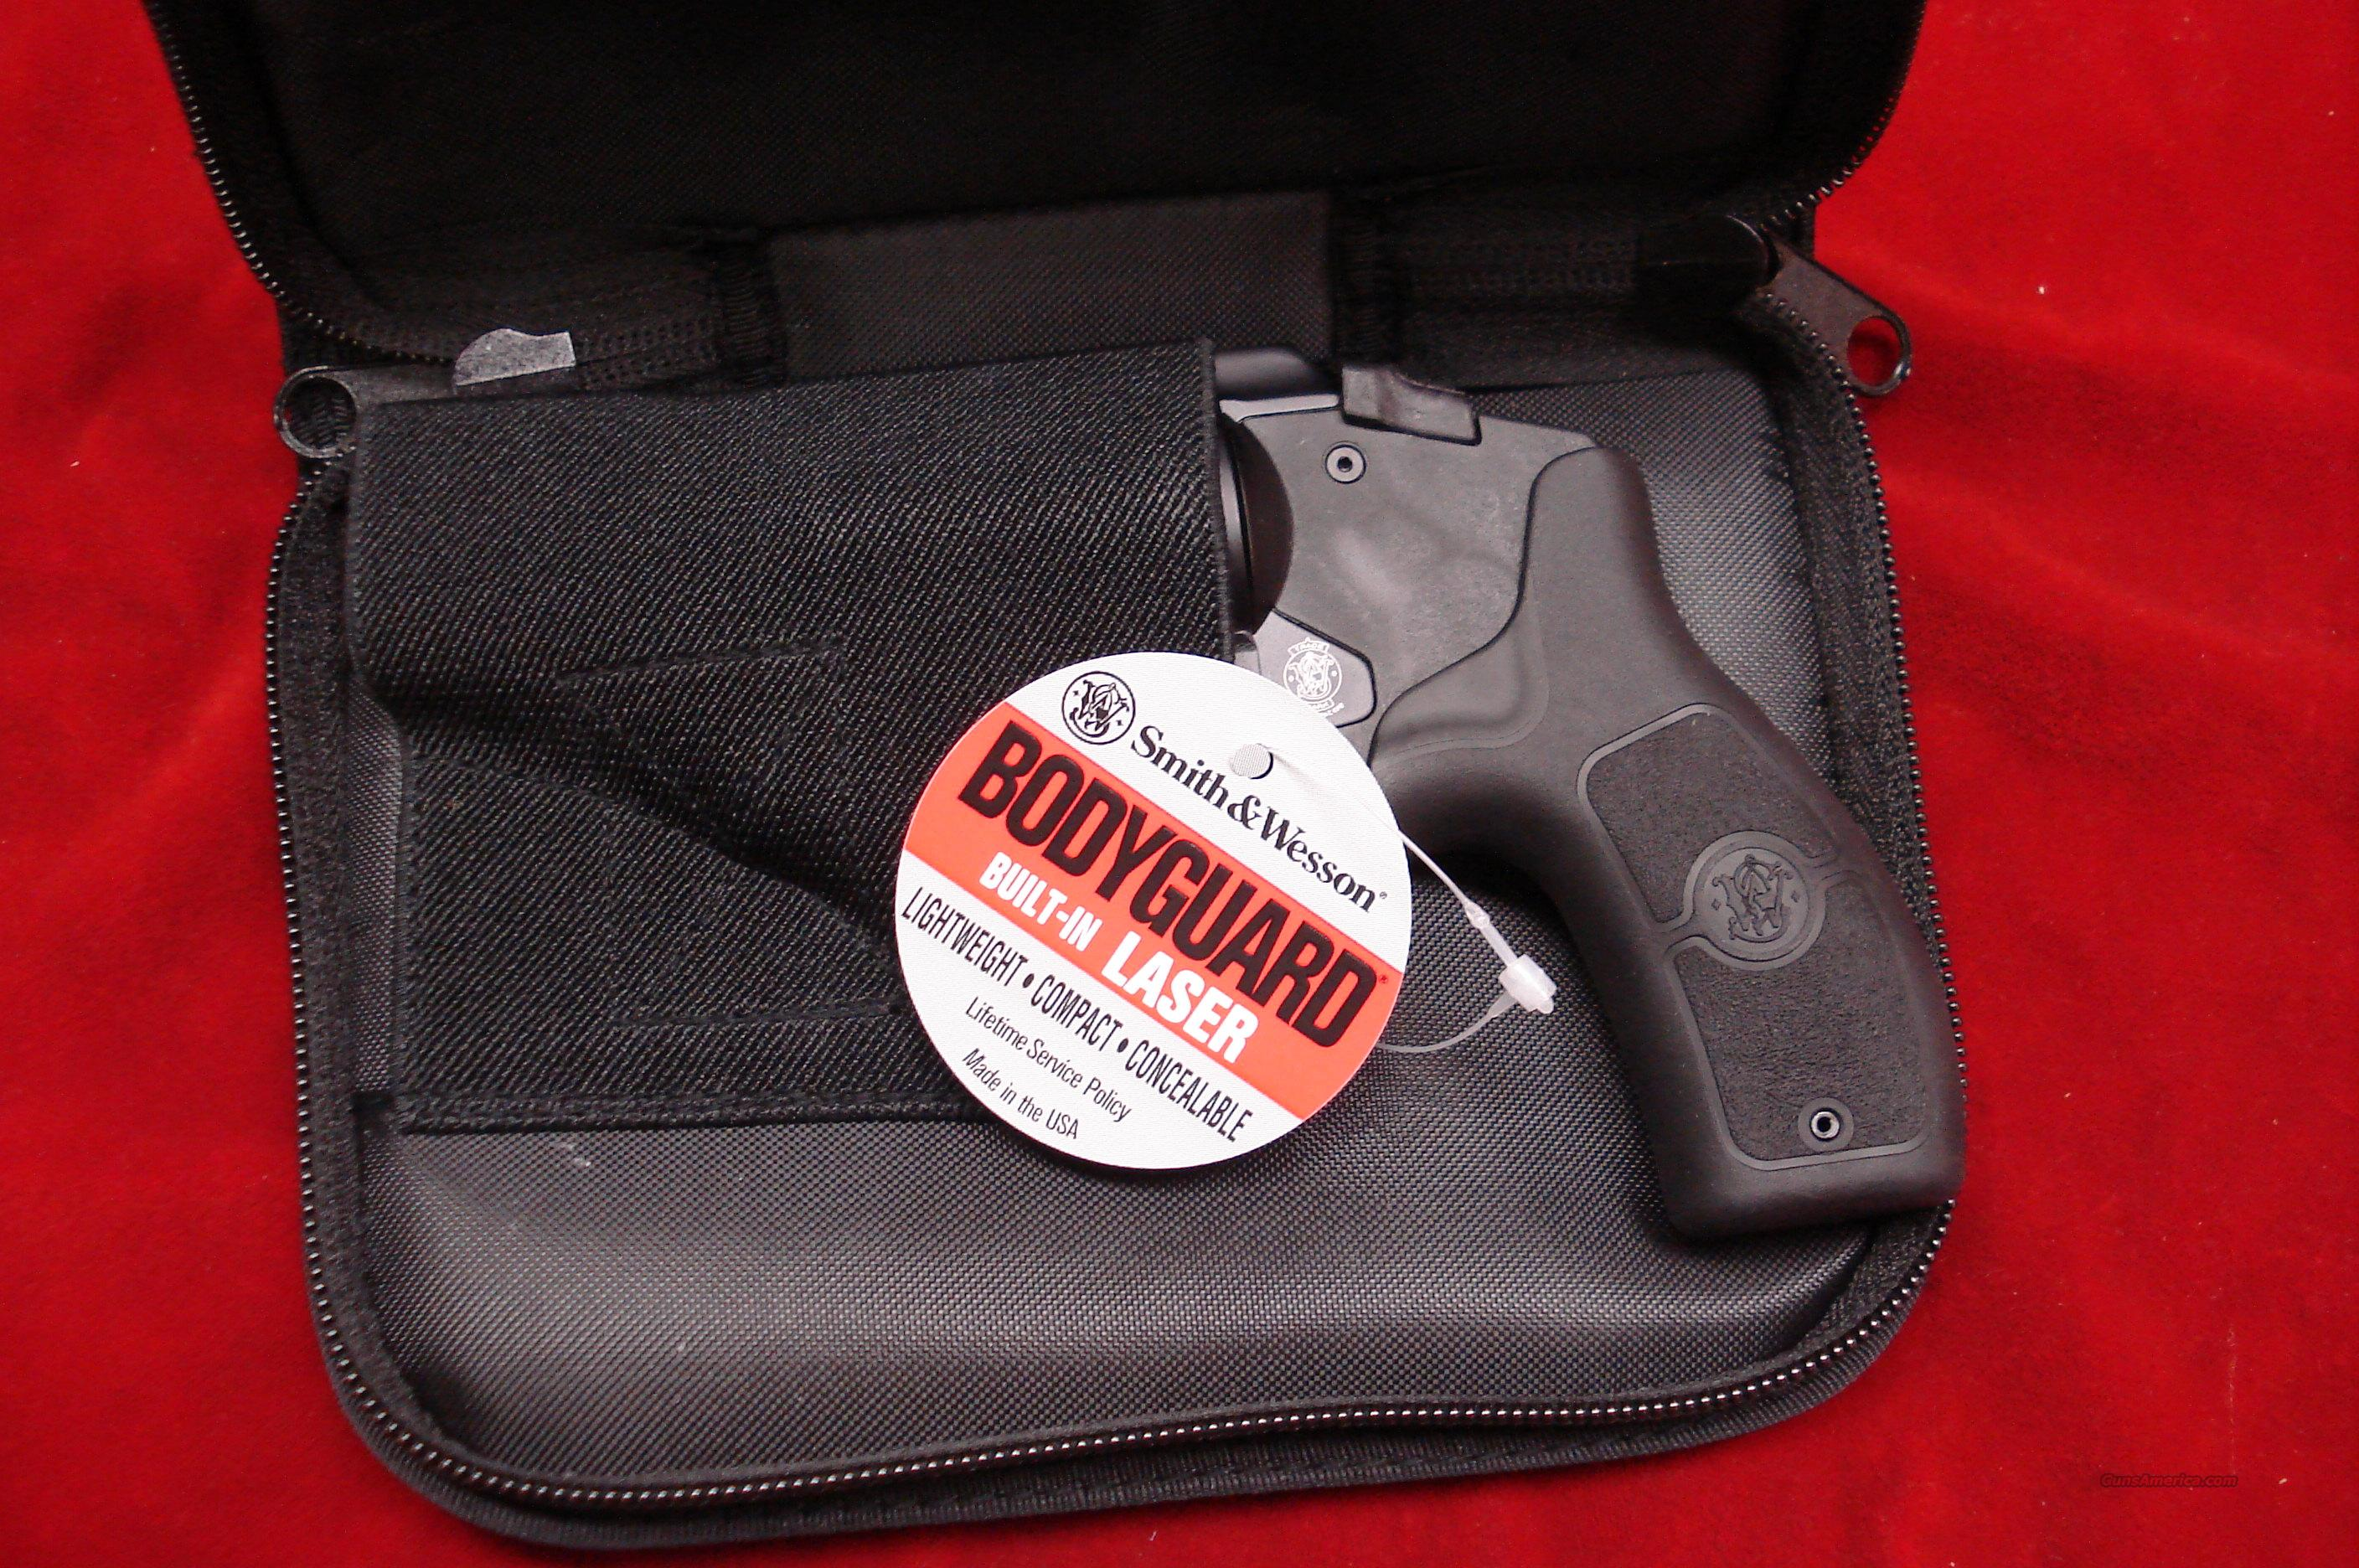 SMITH AND WESSON BODYGUARD 38SPL. WITH LASER NEW  Guns > Pistols > Smith & Wesson Revolvers > Pocket Pistols